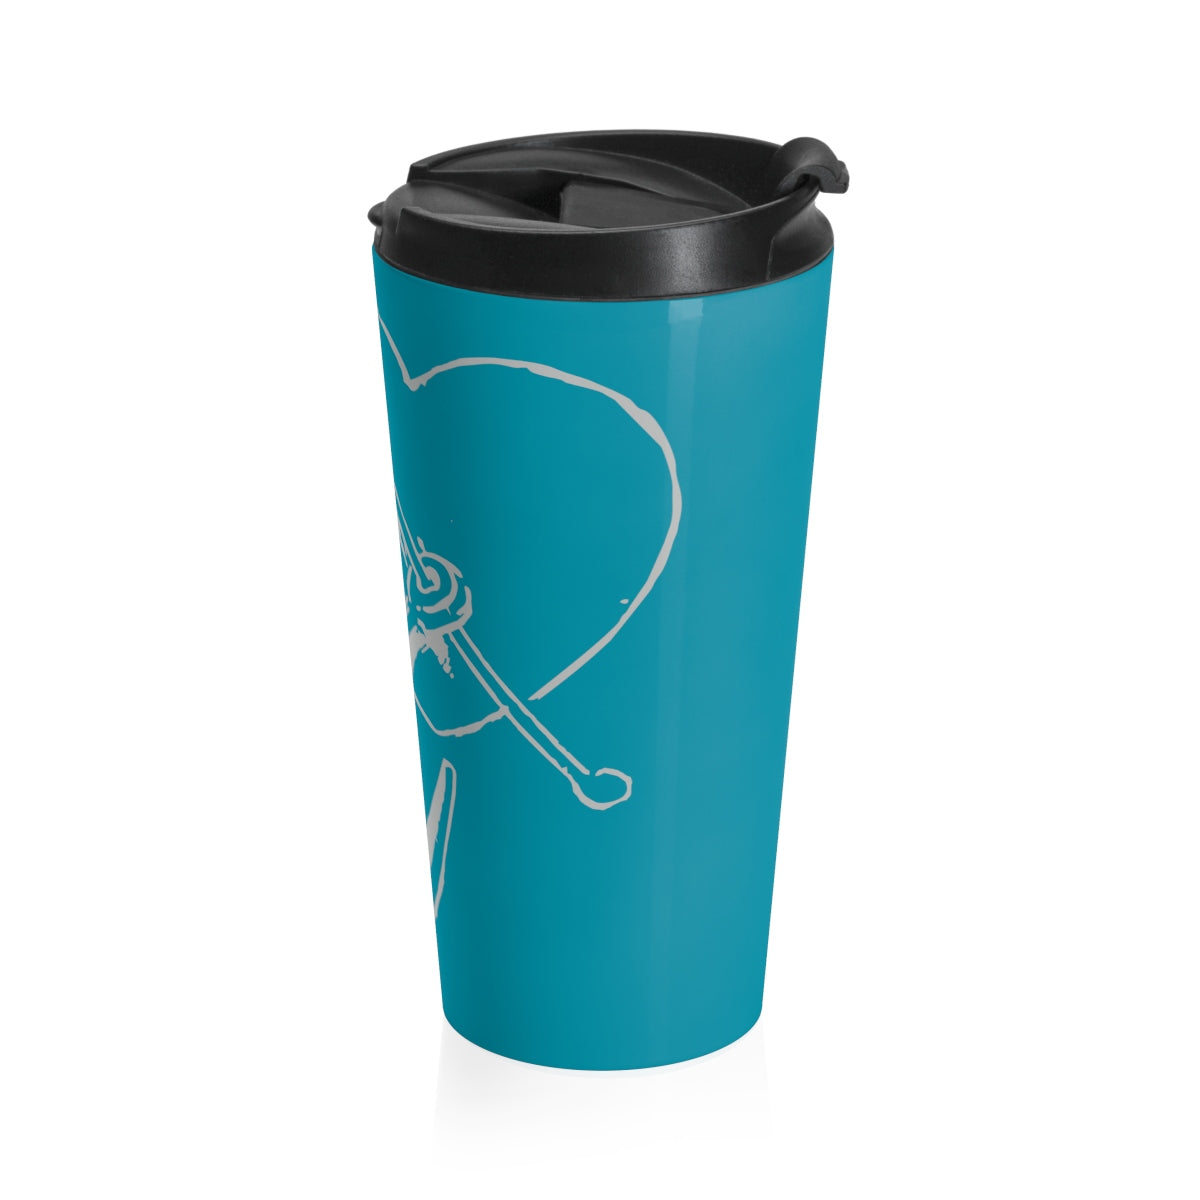 Anchored in Love 15 oz. Stainless Steel Drink Tumbler in Turquoise - Nauti Details